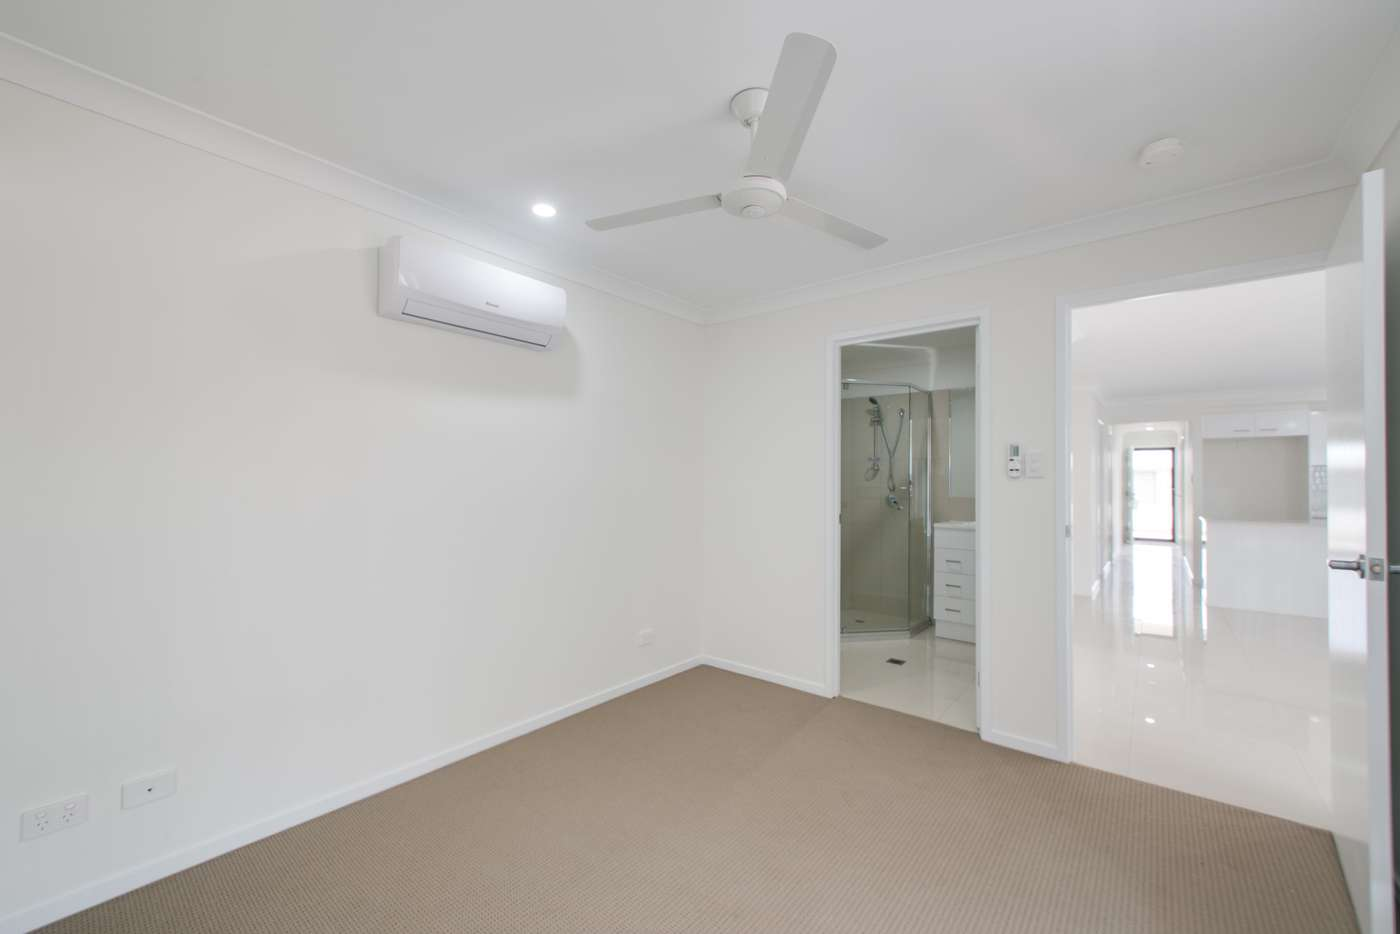 Seventh view of Homely house listing, 1/4 Larter Street, Brassall QLD 4305